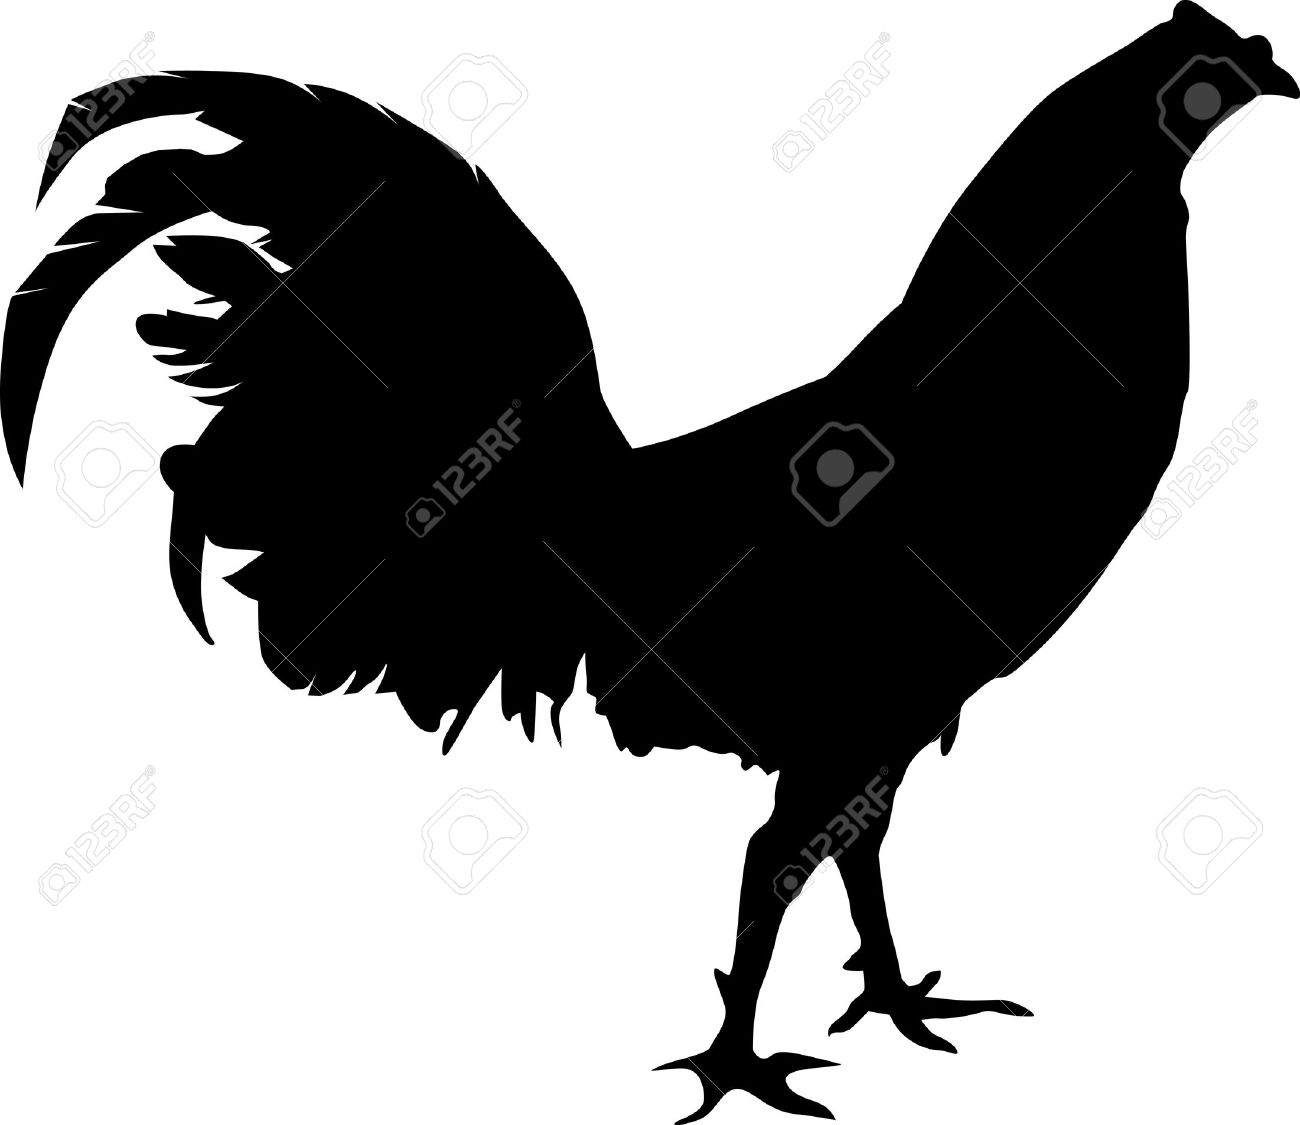 Fighting rooster silhouete walking around.